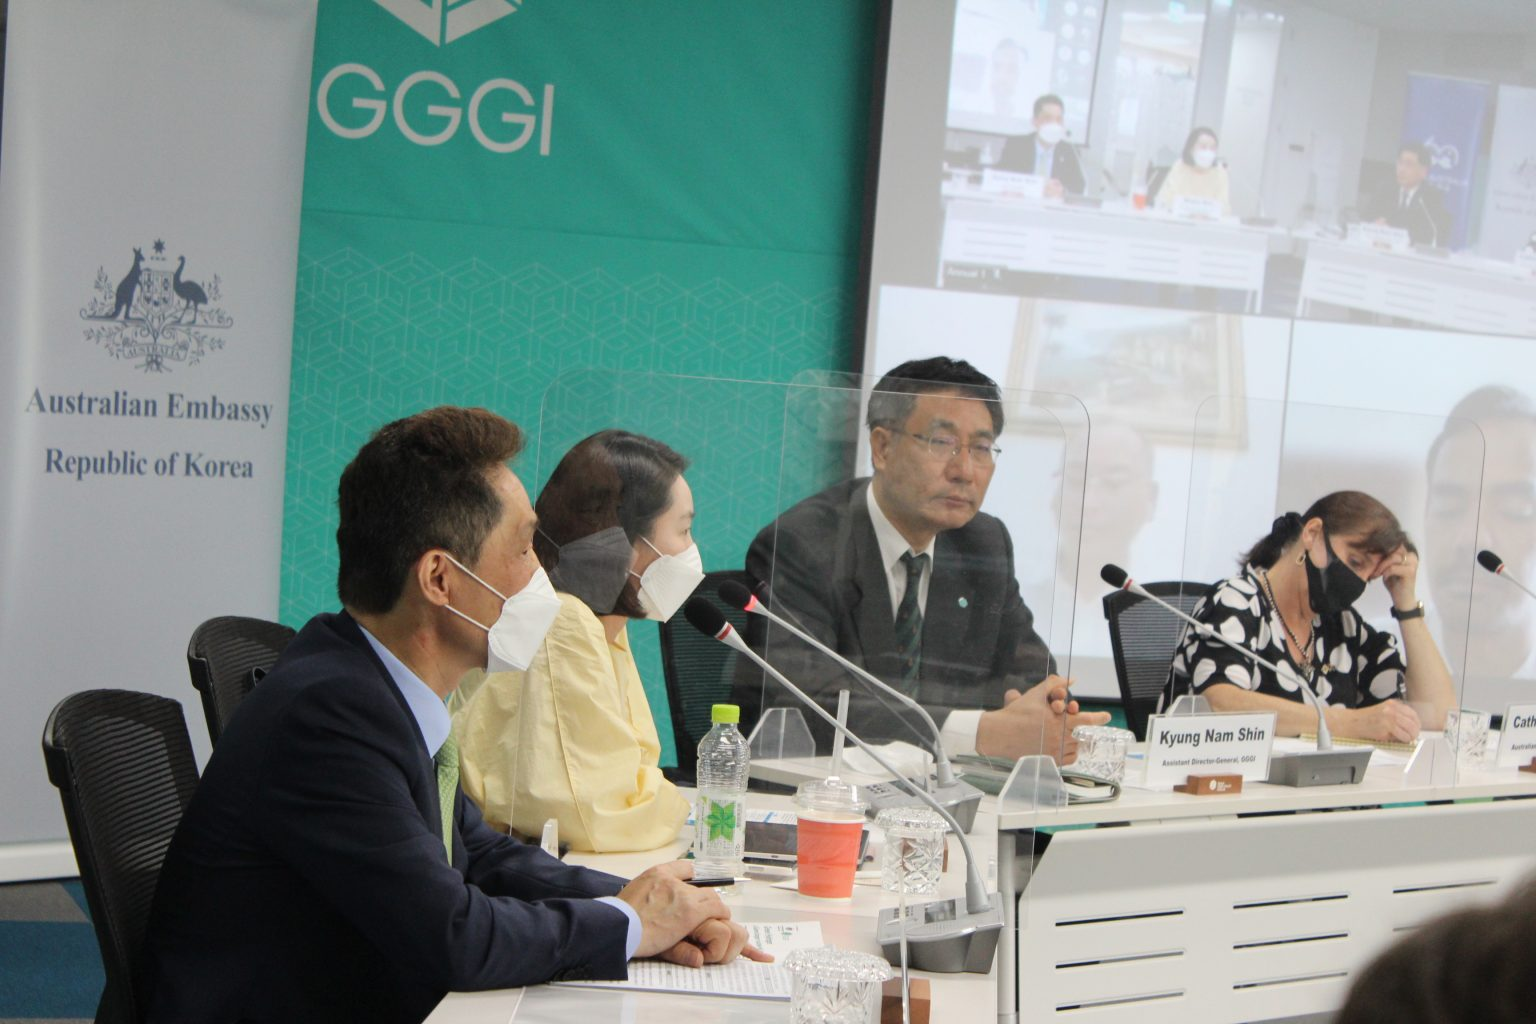 SEOUL, Republic of Korea – The Global Green Growth Institute (GGGI), in partnership with the Australian Embassy to the Republic of Korea, co-hosted